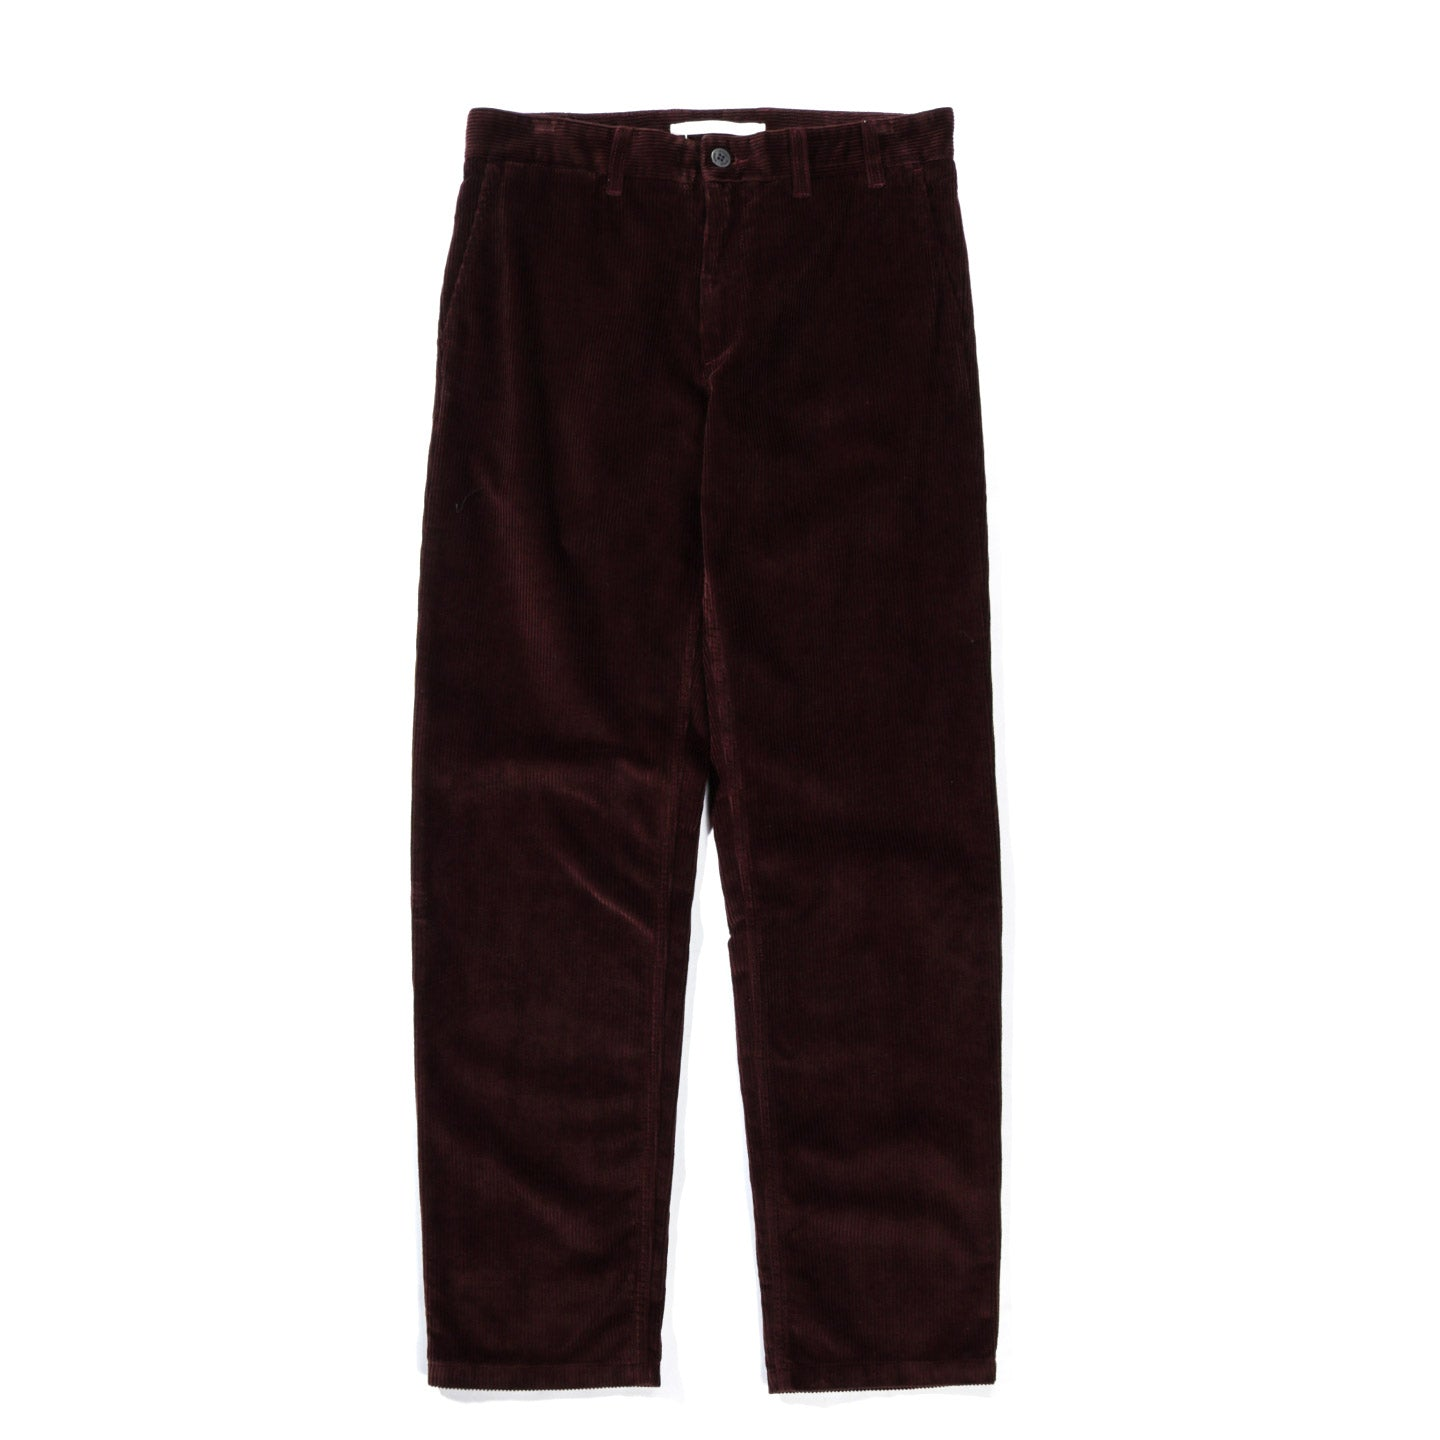 NORSE PROJECTS AROS CORDUROY PANT BURNT SIENNA